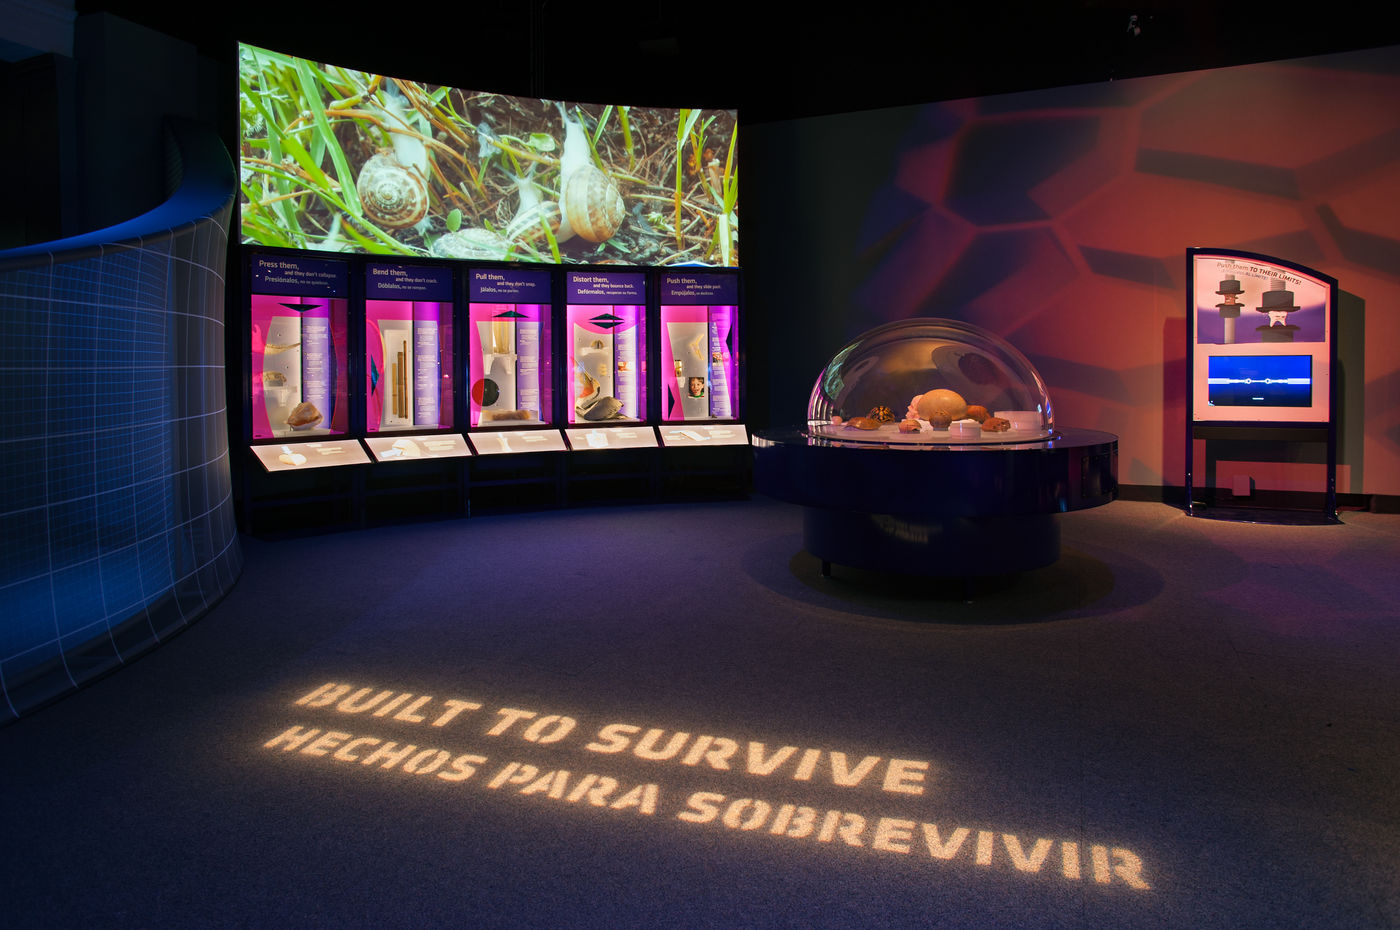 """View of the Machine Inside: Biomechanics exhibition, showing a case of shells, a wall projection of snails in grass, and the words """"Built to Survive"""" projected on the floor in the foreground."""